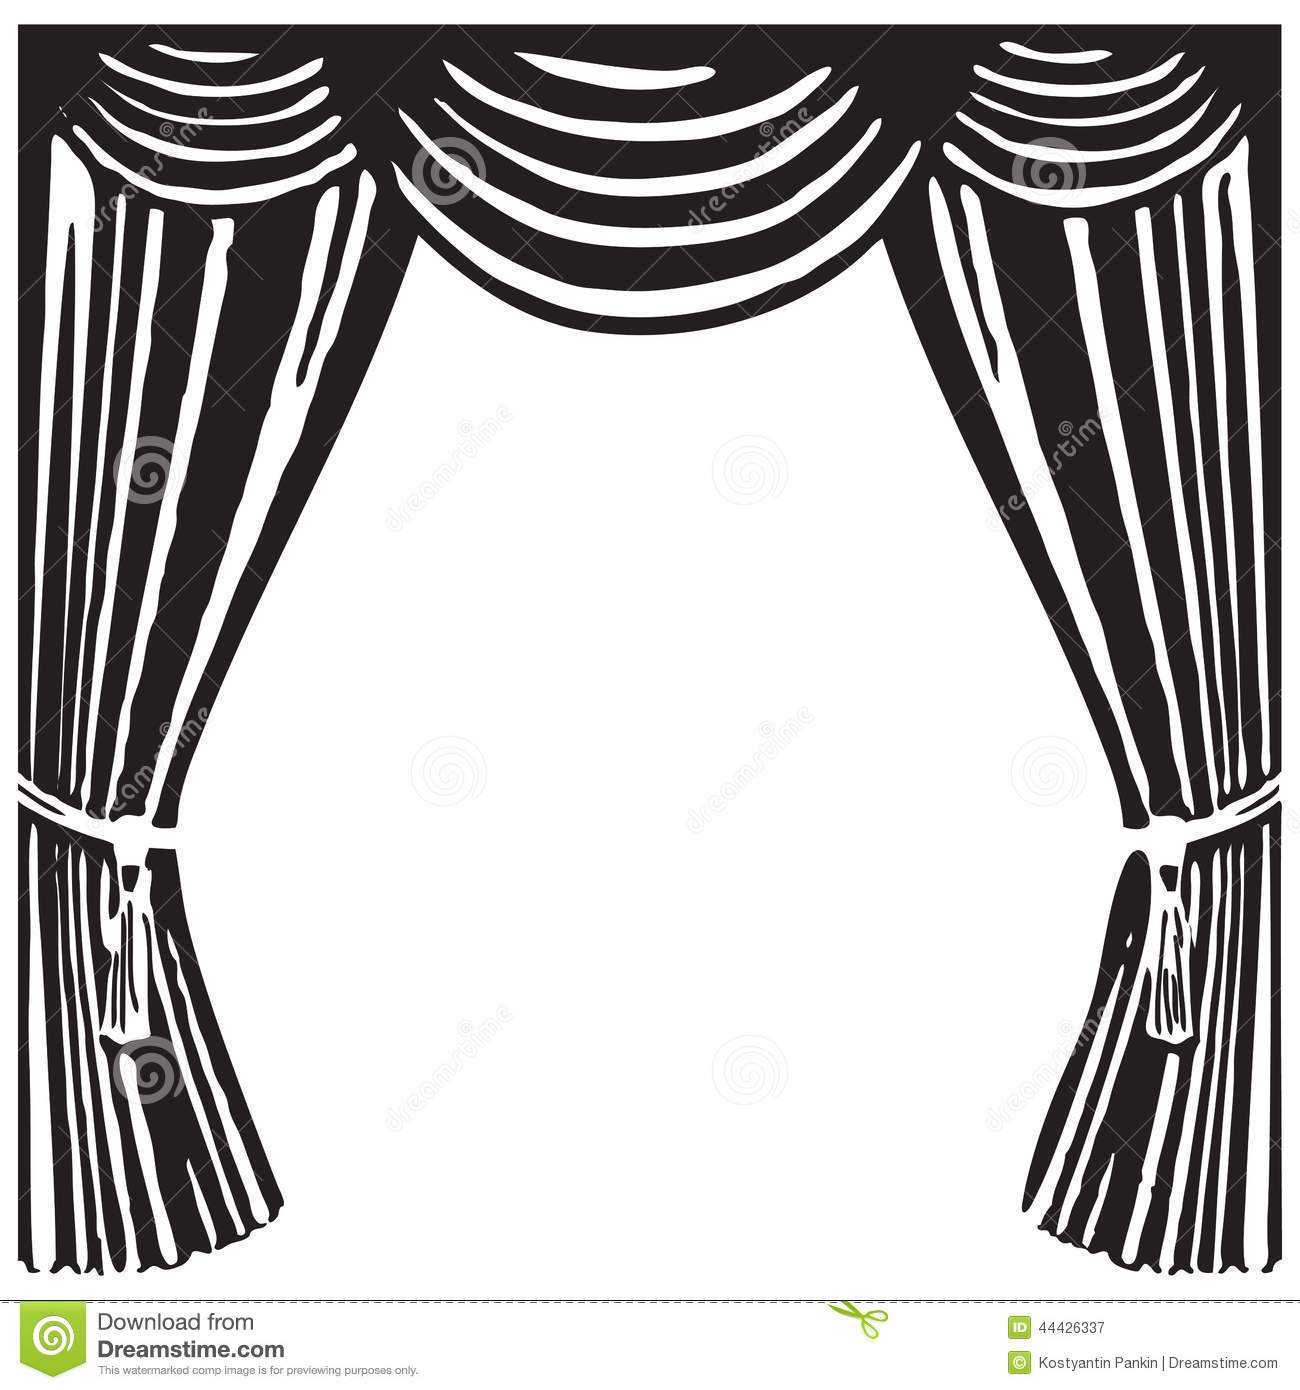 Black and white stage clipart banner royalty free library Stage clipart black and white 4 » Clipart Portal banner royalty free library